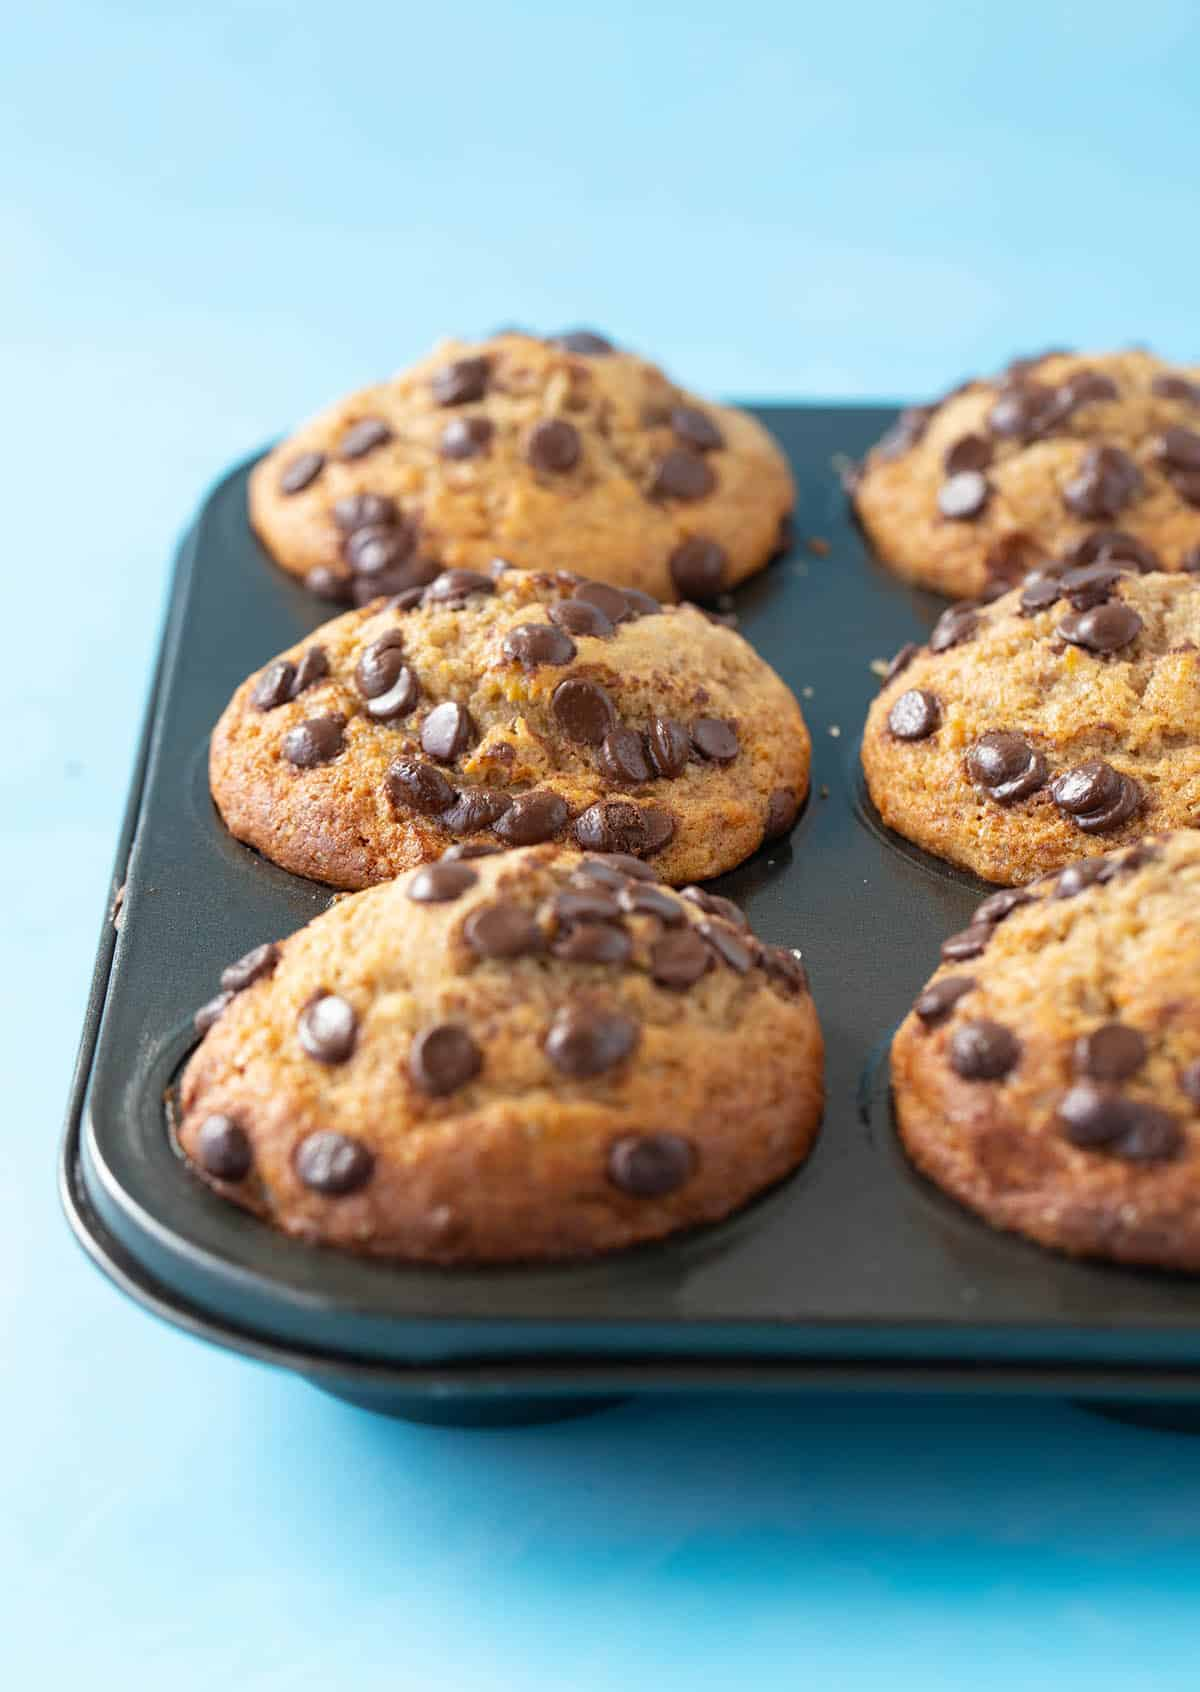 Small Batch Banana Muffins decorated with chocolate chips